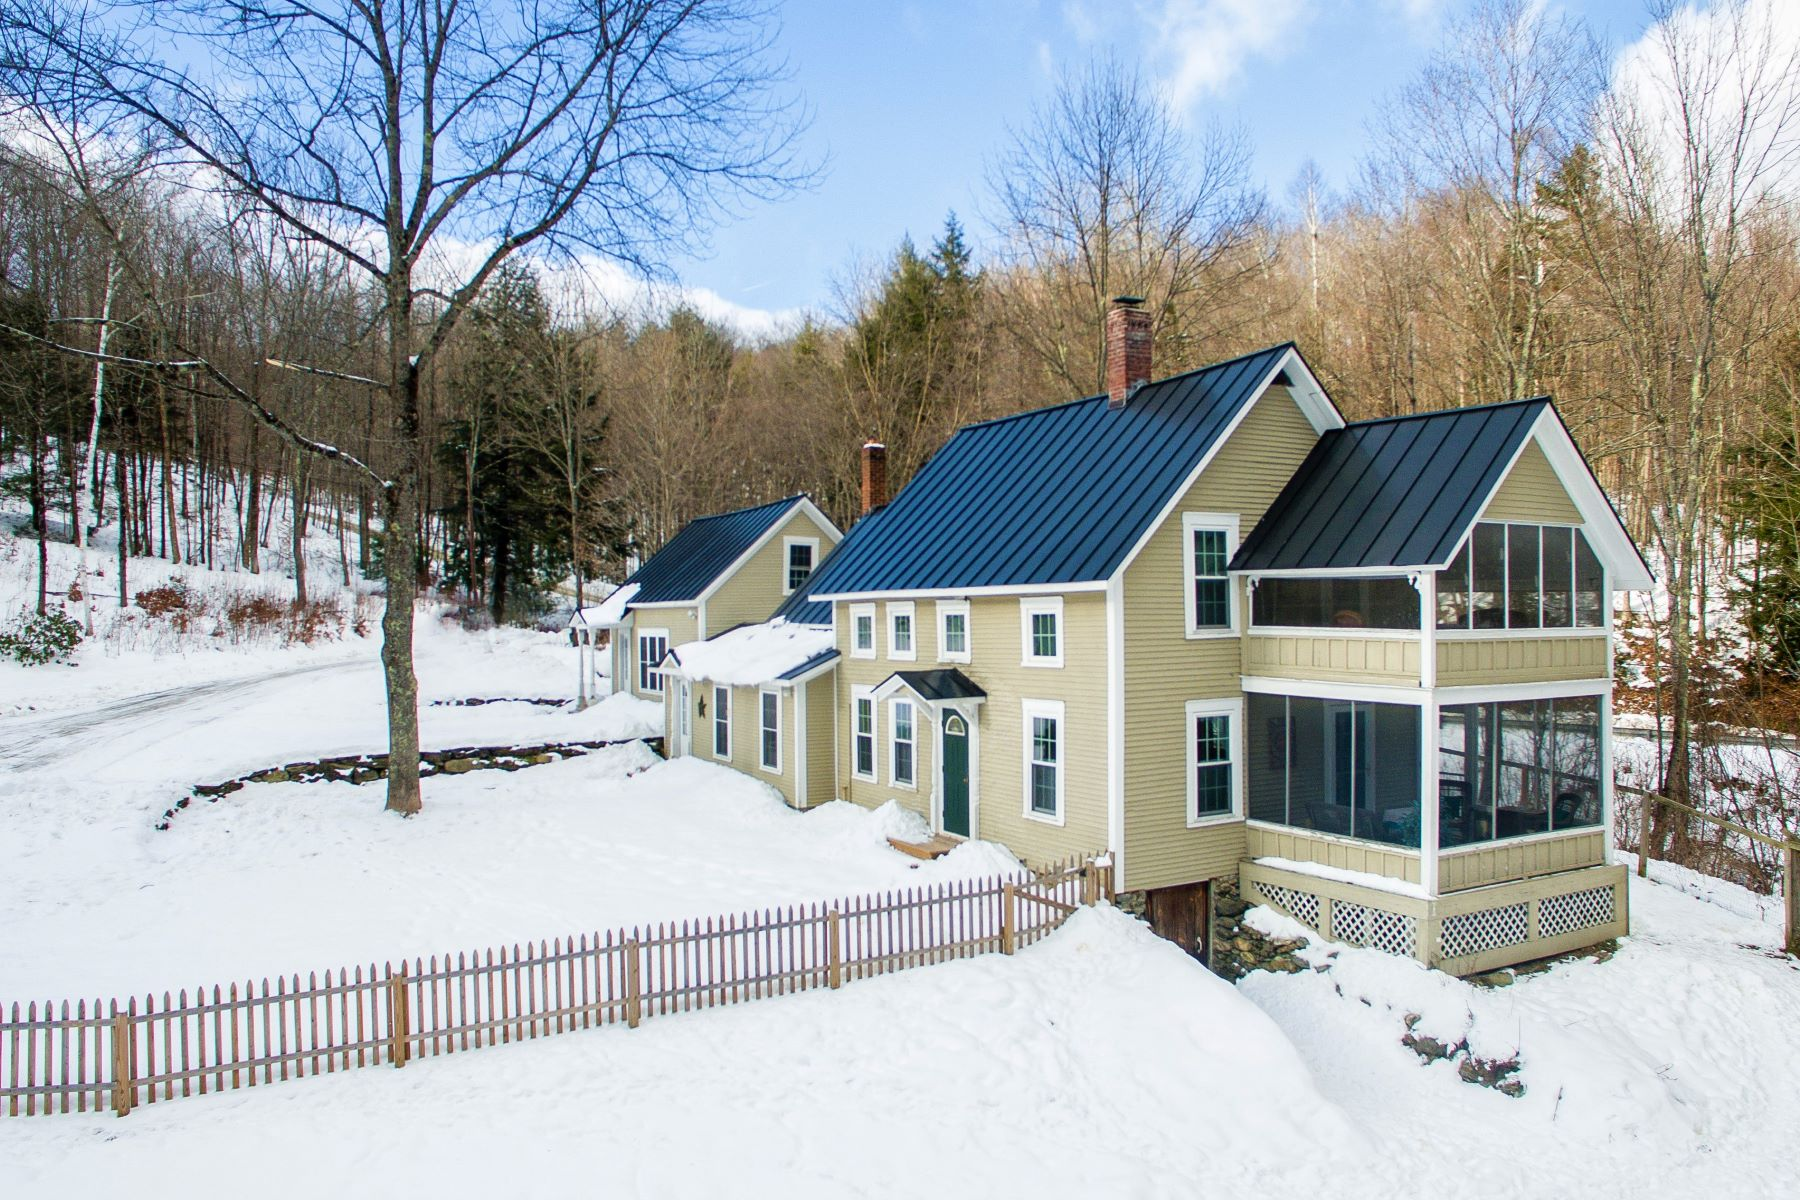 Single Family Home for Sale at Endless Mountain Views 873 Liberty Hill Rd Rochester, Vermont 05767 United States